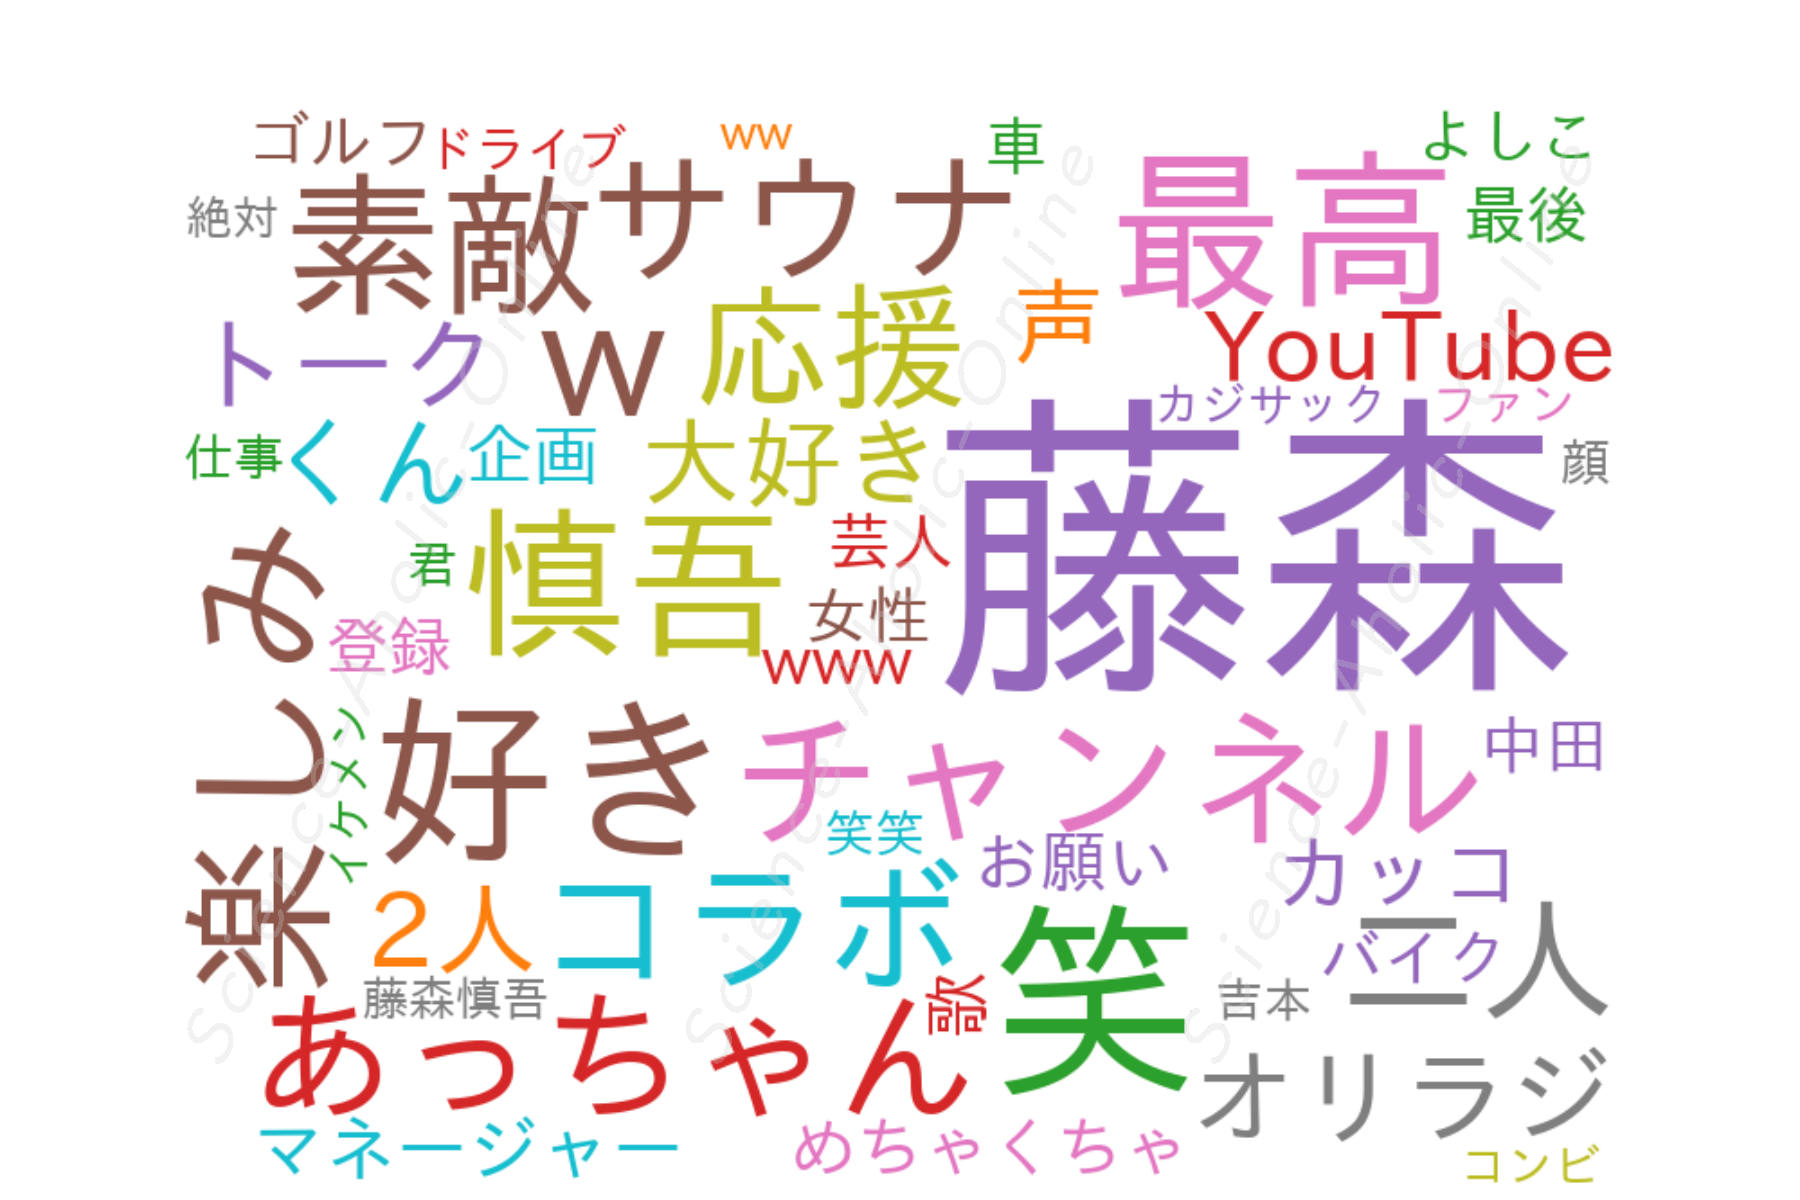 https://science-aholic-online.com/wp-content/uploads/2020/08/wordcloud_藤森慎吾のYouTubeチャンネル.png